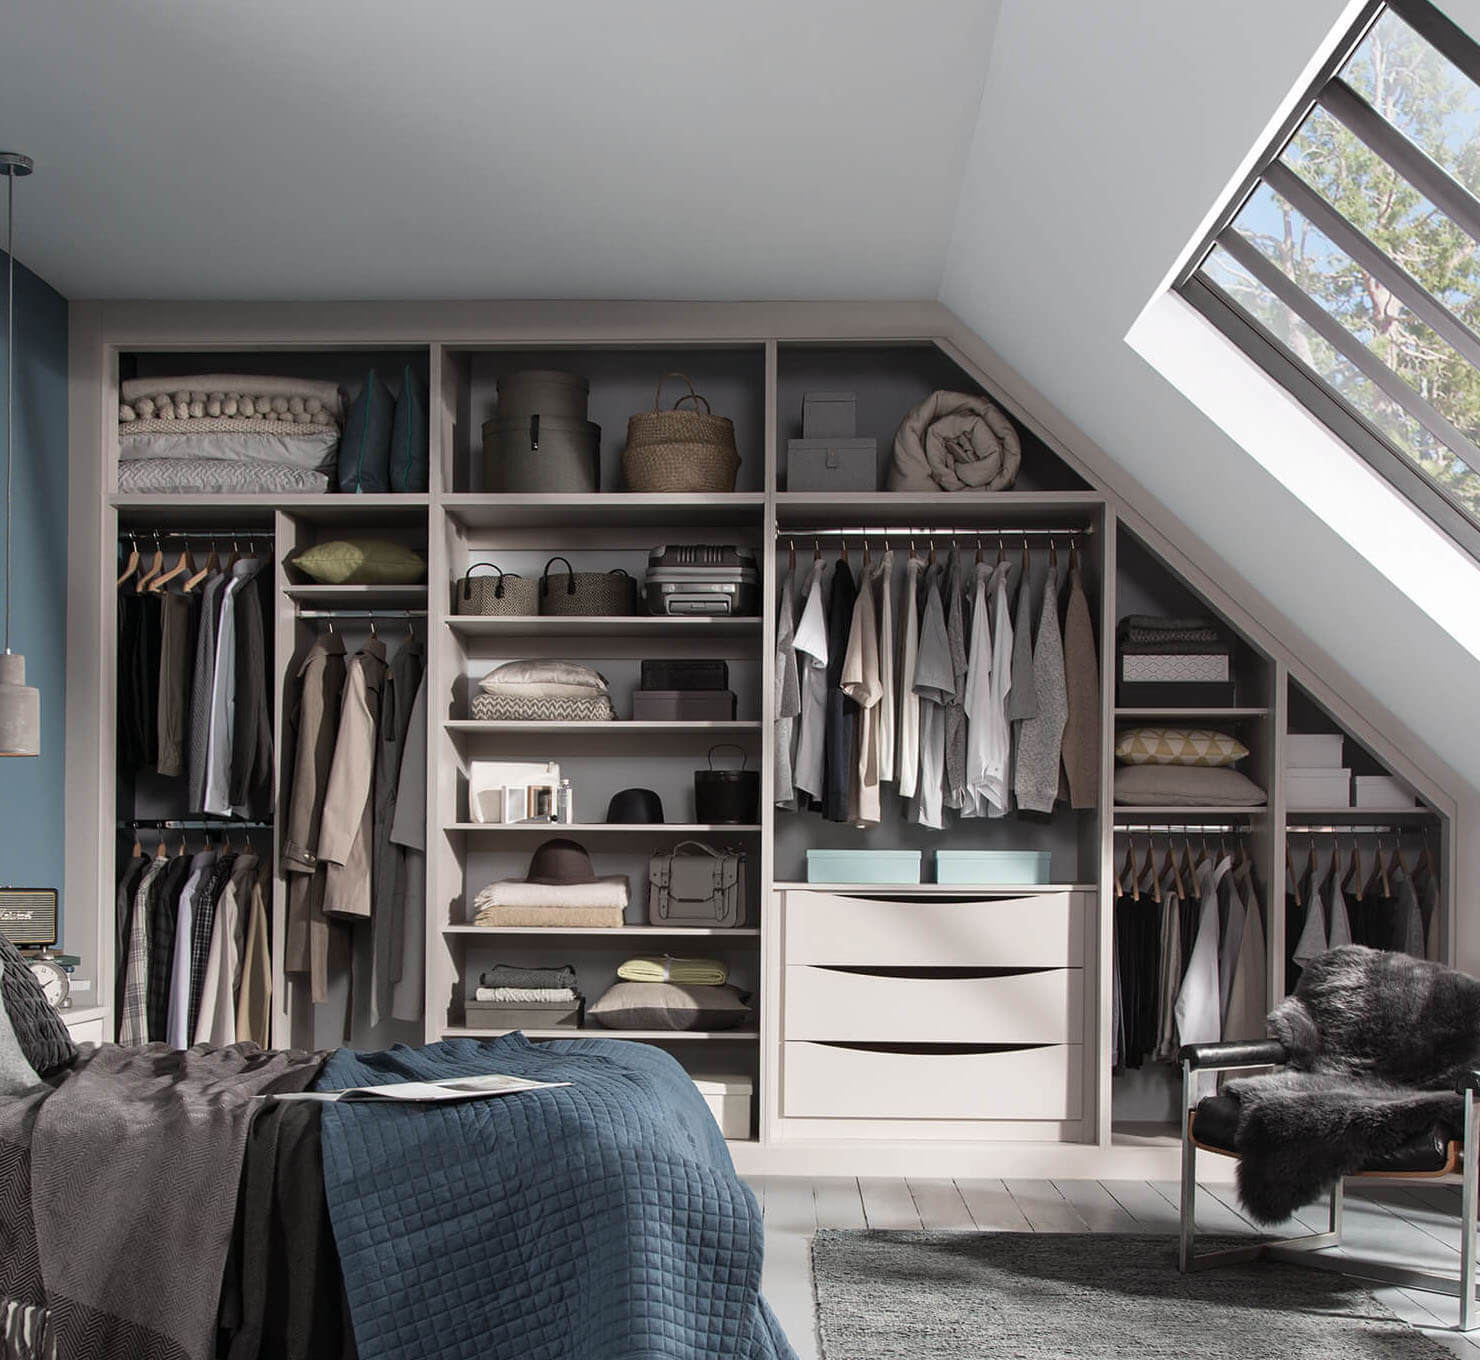 image map of a bedroom wardrobe with hotspots point ot various areas